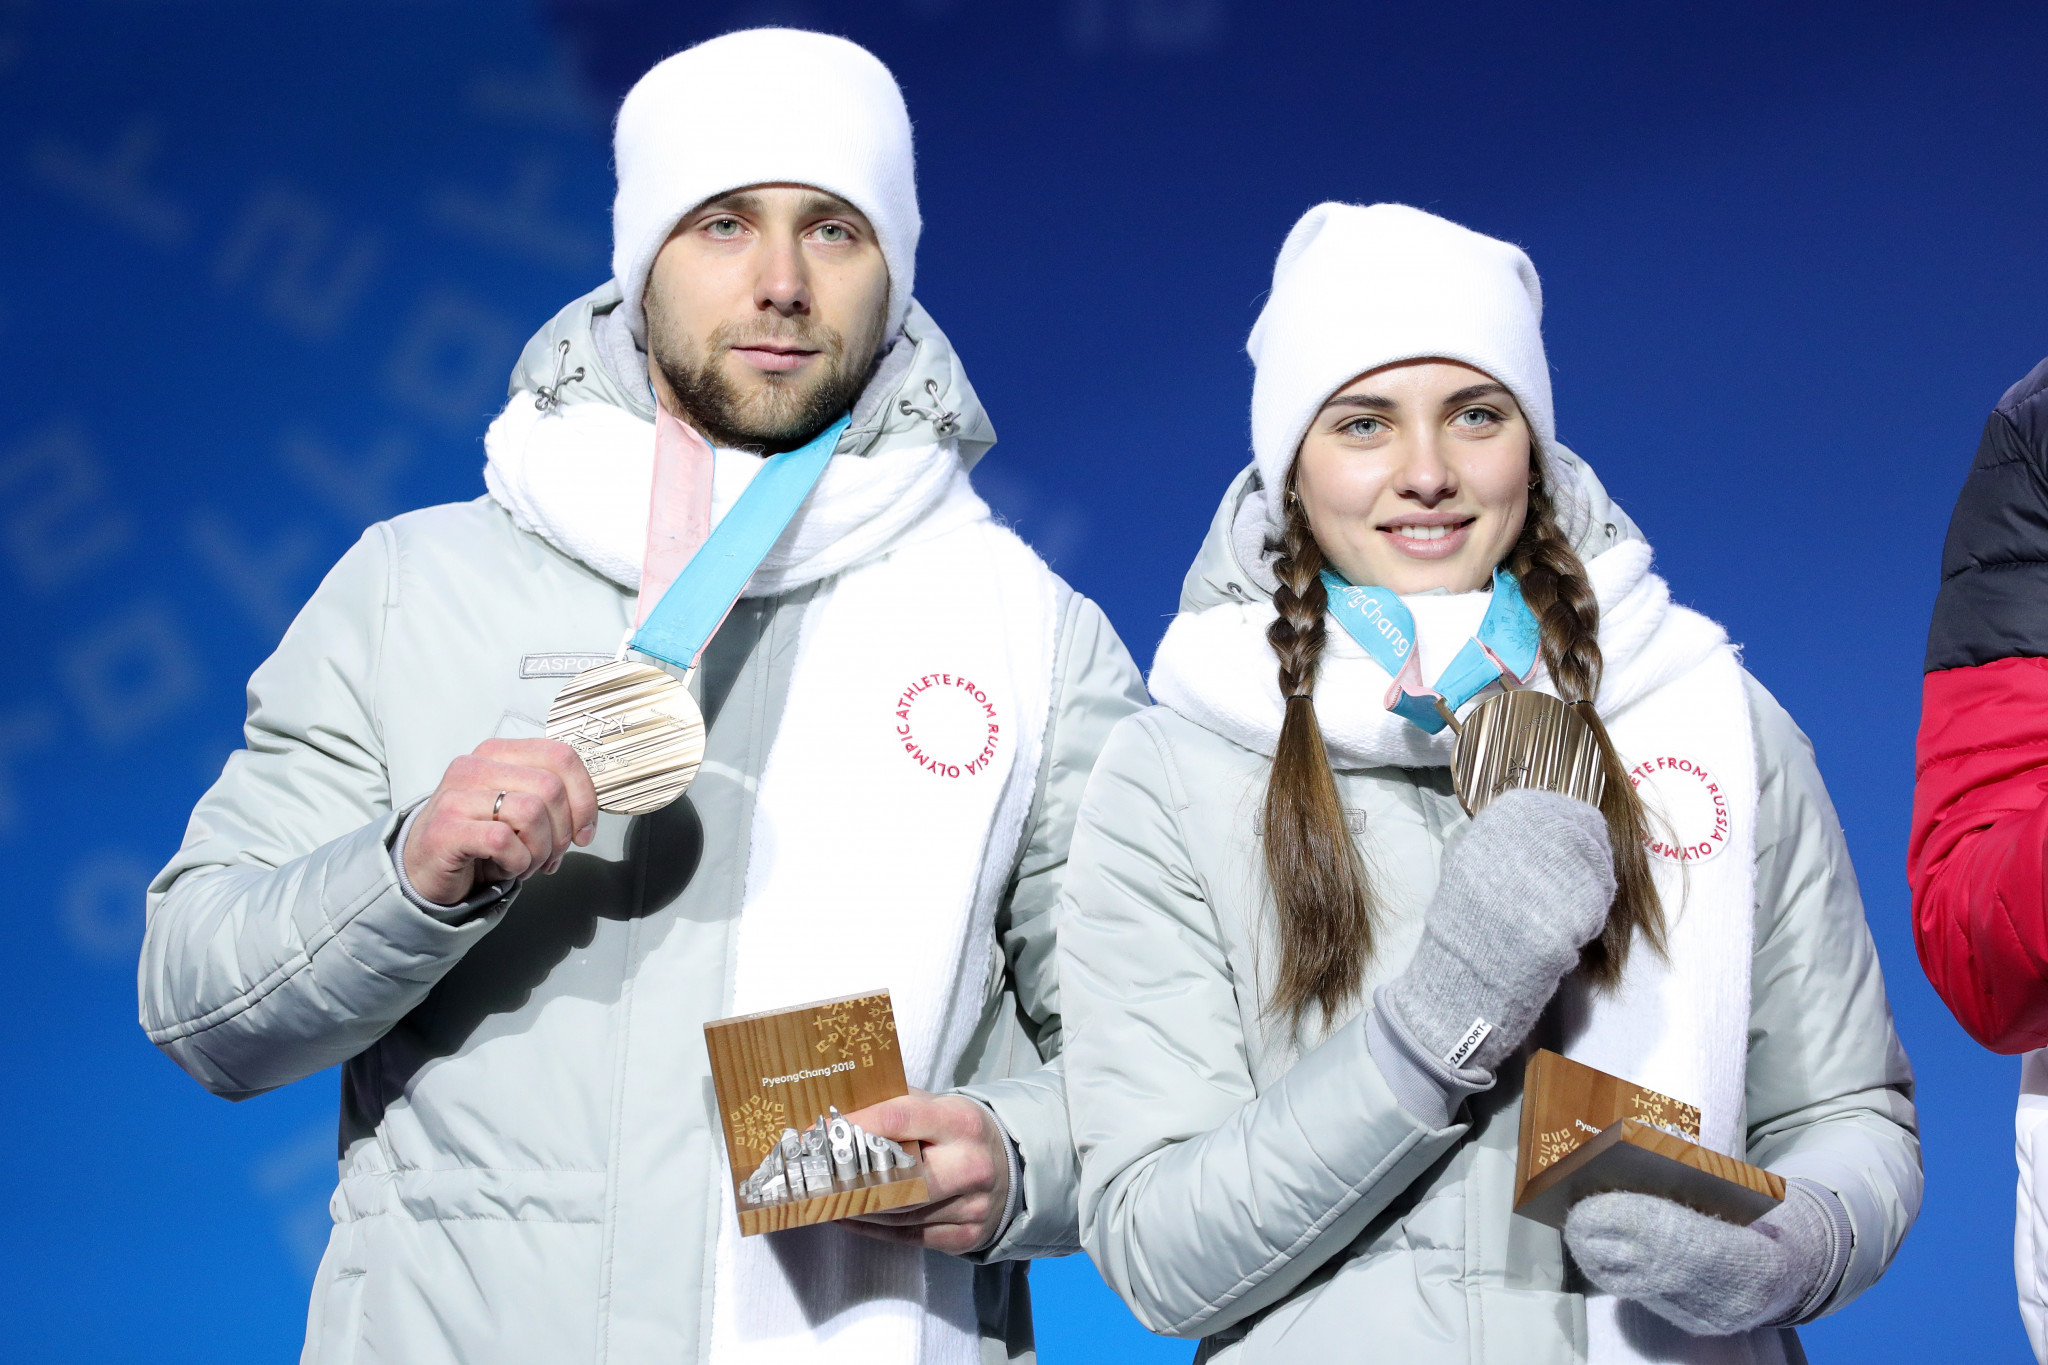 Aleksandr Krushelnitckii and wife Anastasia Bryzgalova were forced to hand back their Olympic bronze medals they had won at Pyeongchang 2018 following the case ©Getty Images